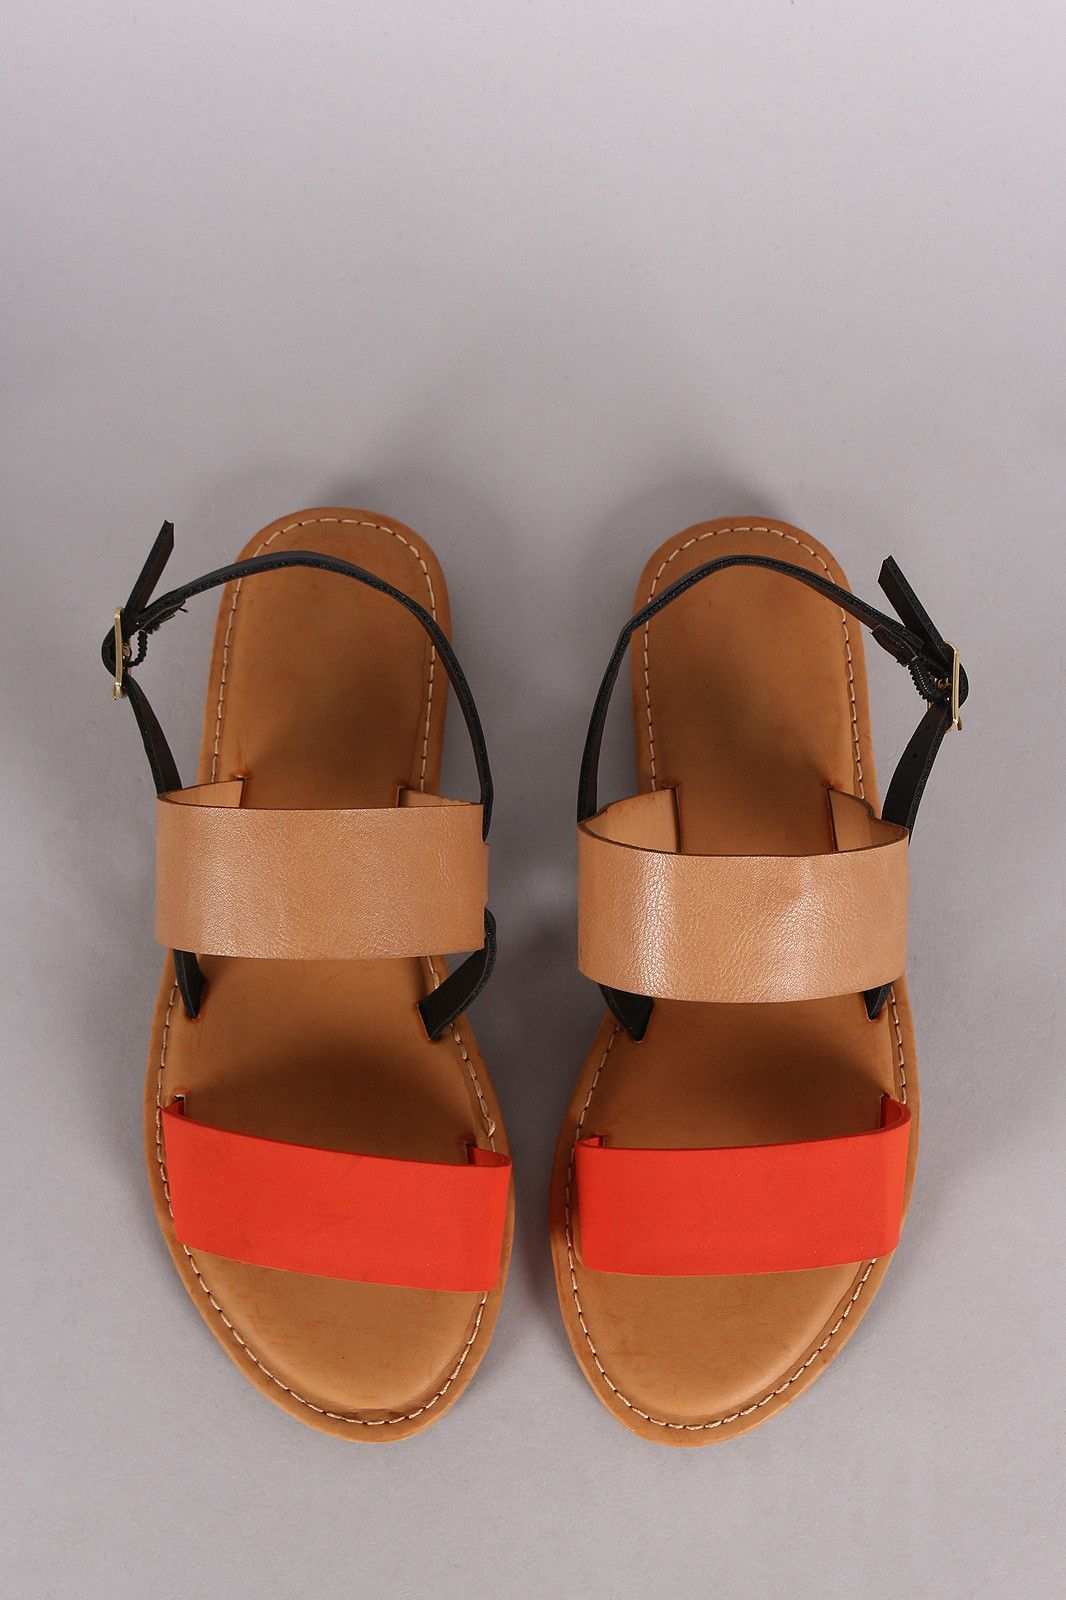 54e0cb04f68f Description This flat sandal features two tone color